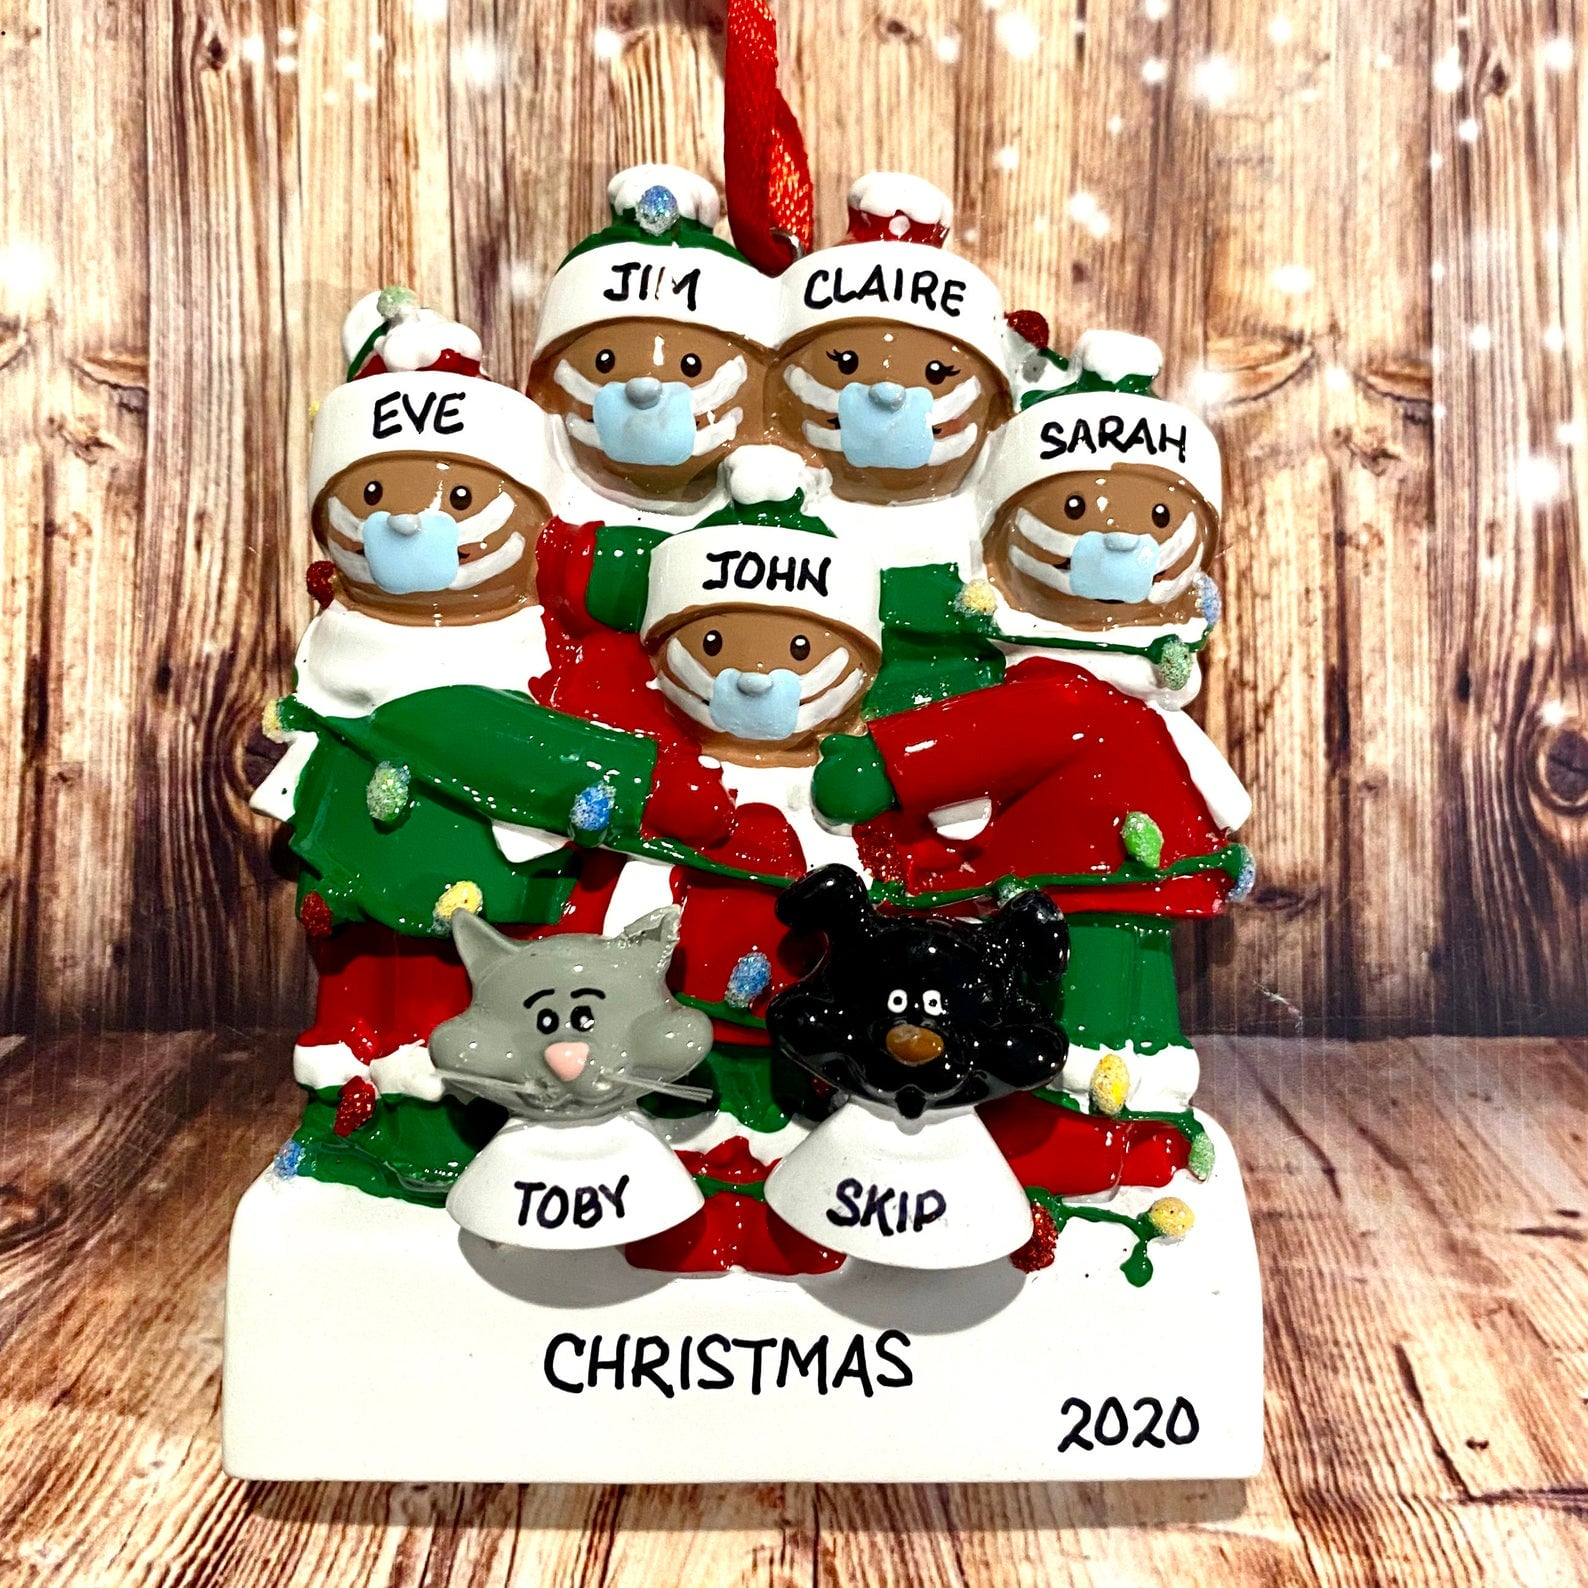 shop pandemic themed 2020 christmas ornaments for families popsugar family shop pandemic themed 2020 christmas